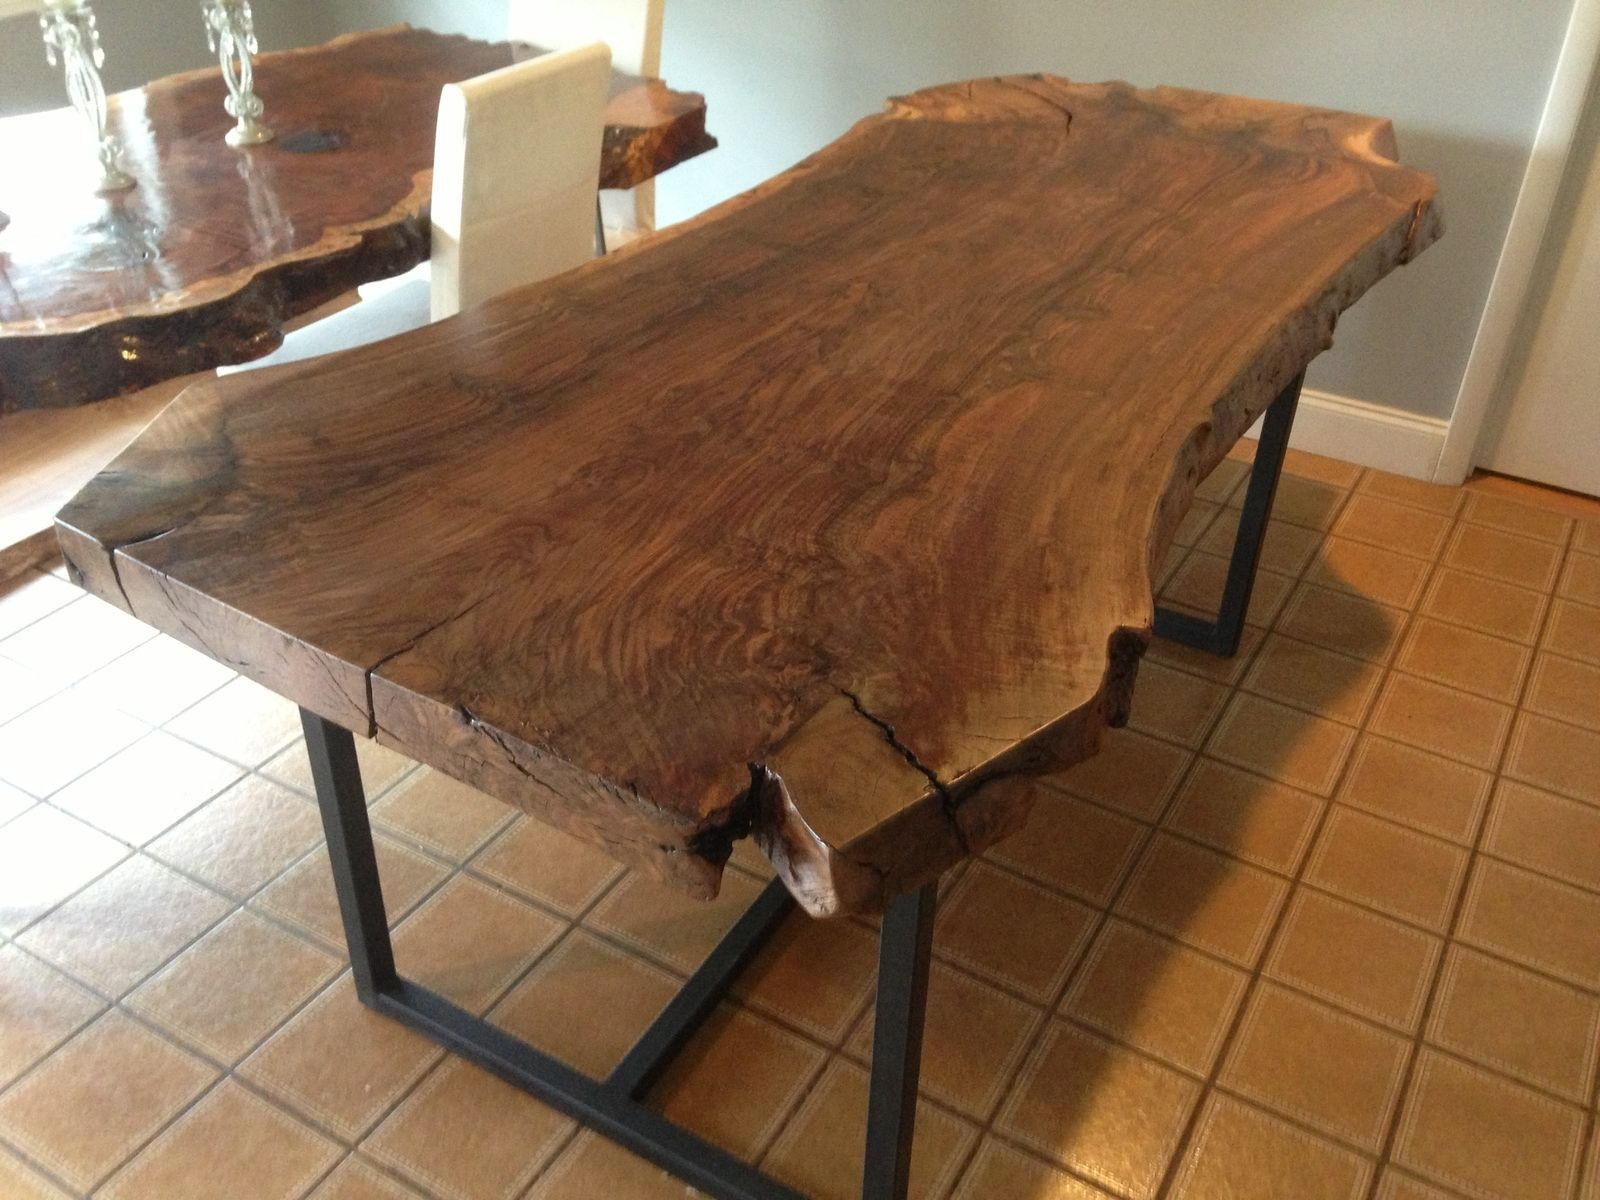 Walnut live edge dining table - Custom Made Live Edge Claro Walnut Dining Table